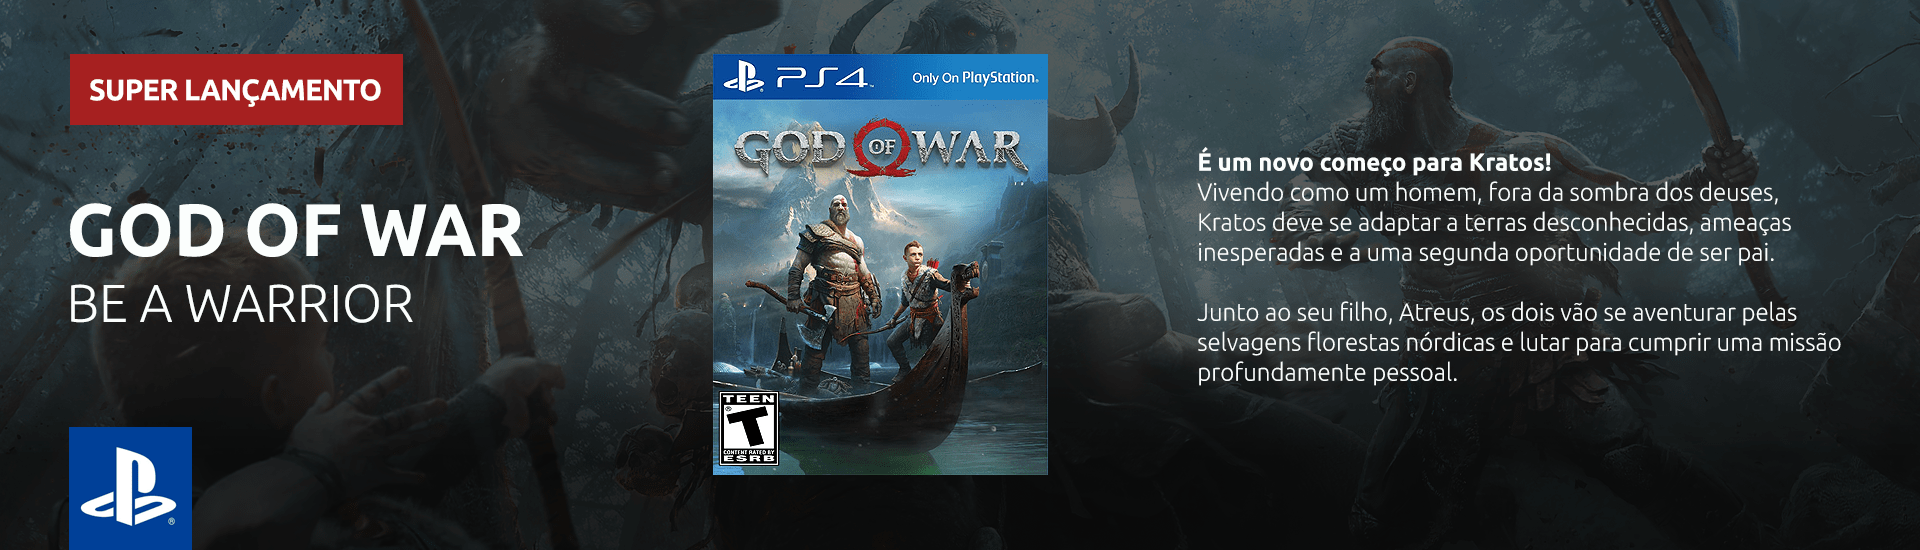 PS4 - God Of War